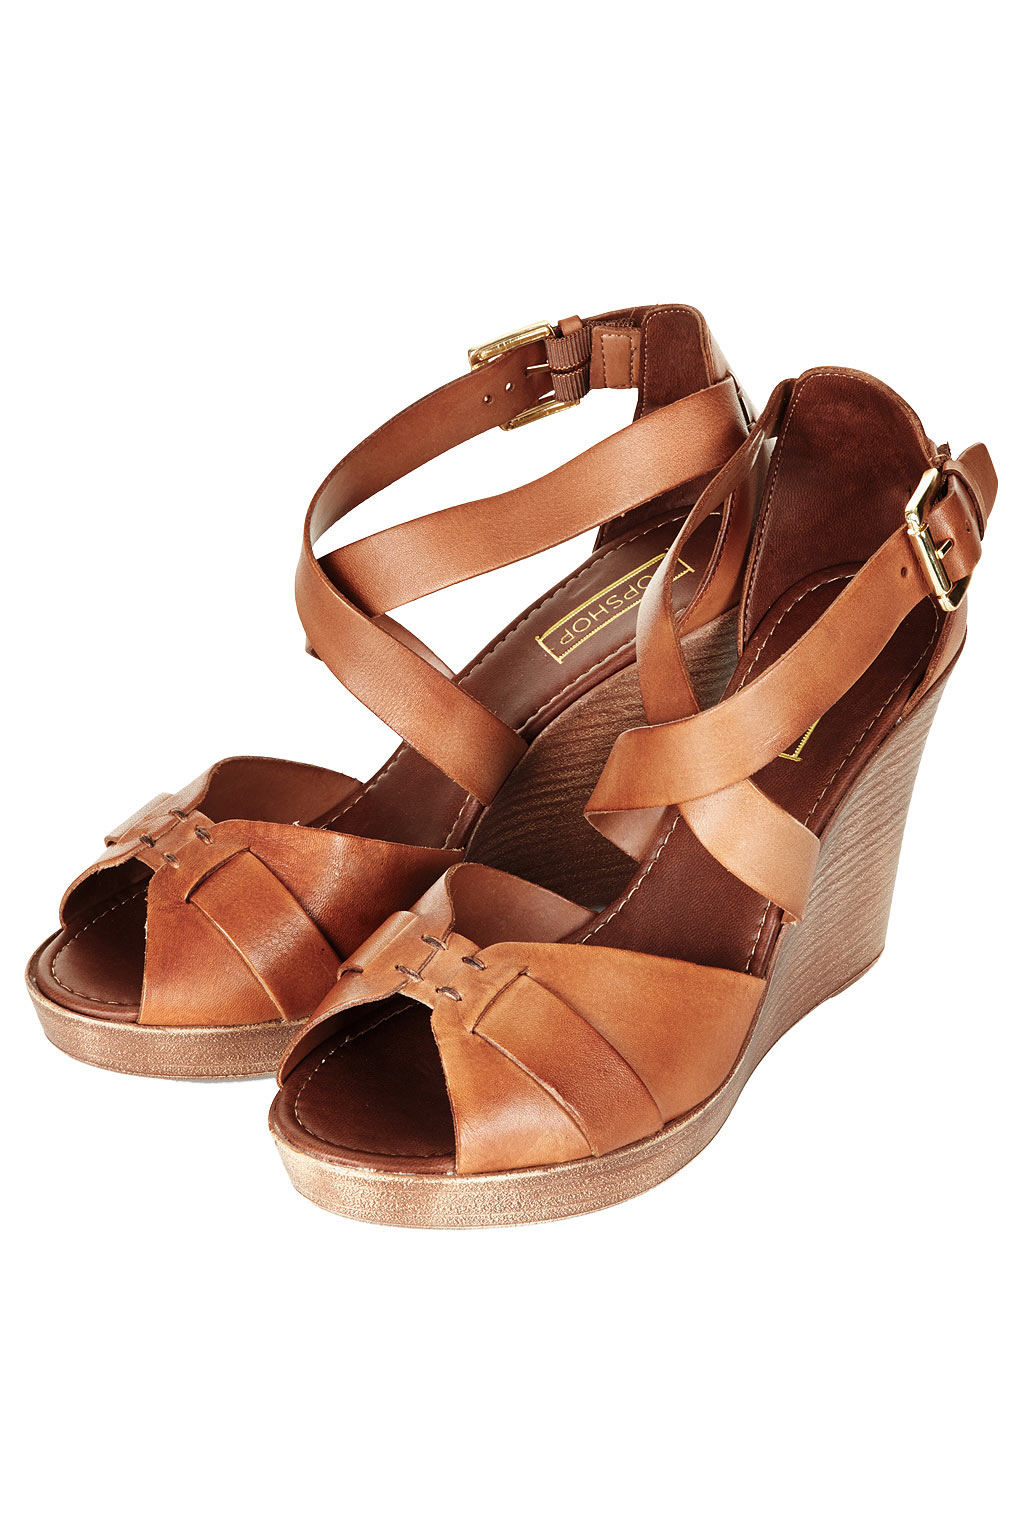 Topshop Whippie Cross Over Wedges In Brown Lyst